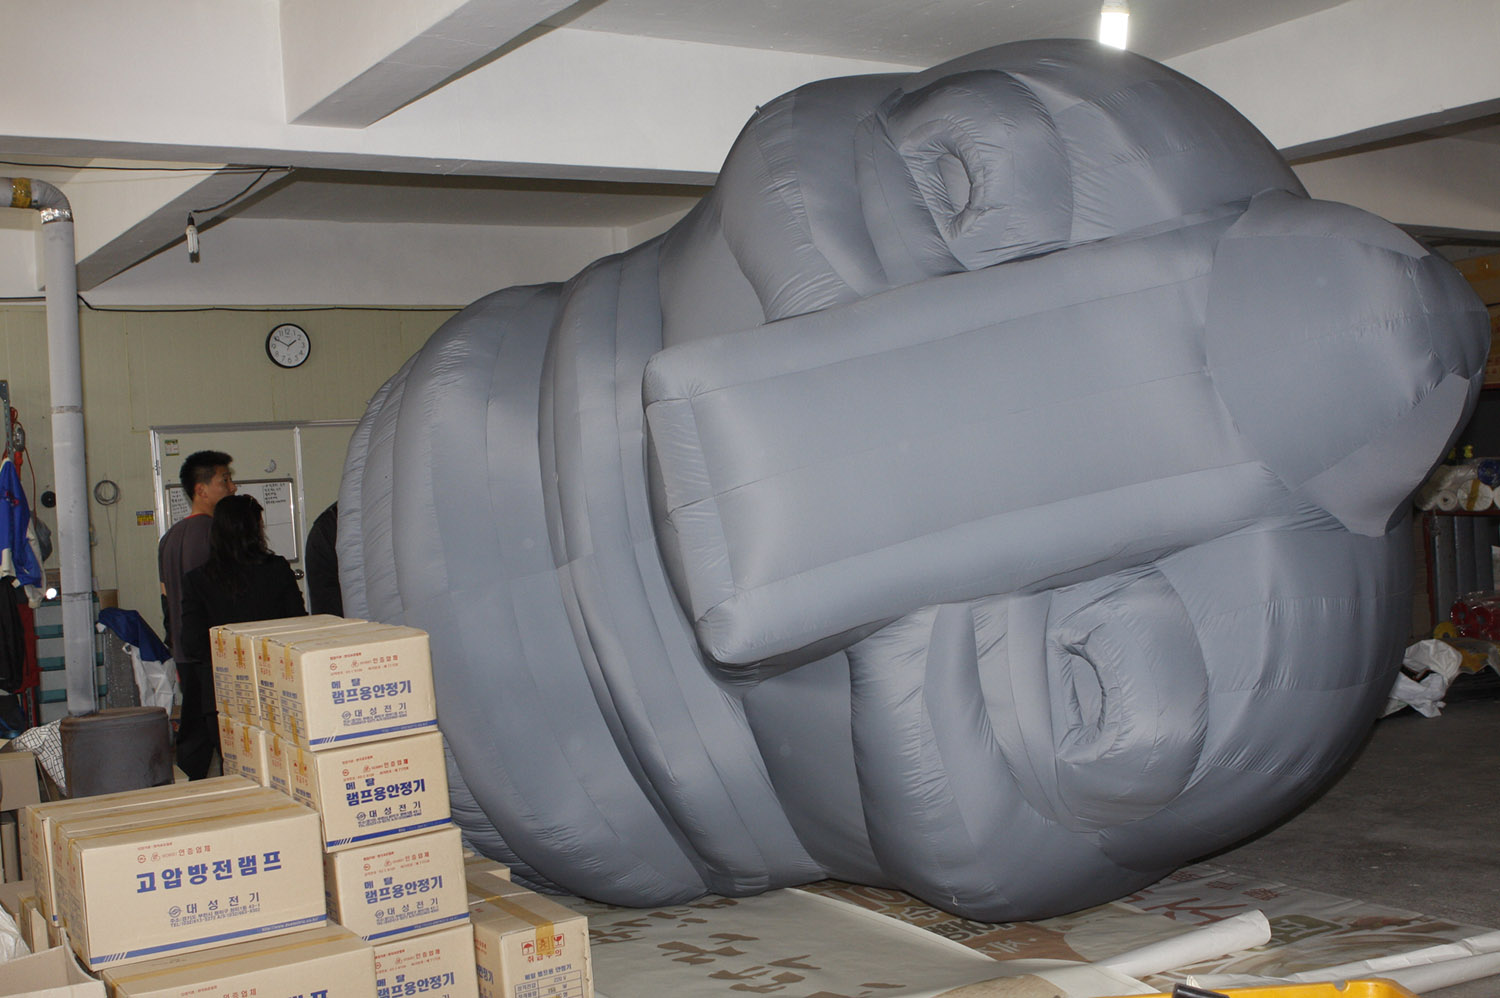 giant-bowl-inflatable-sculpture-00.jpg